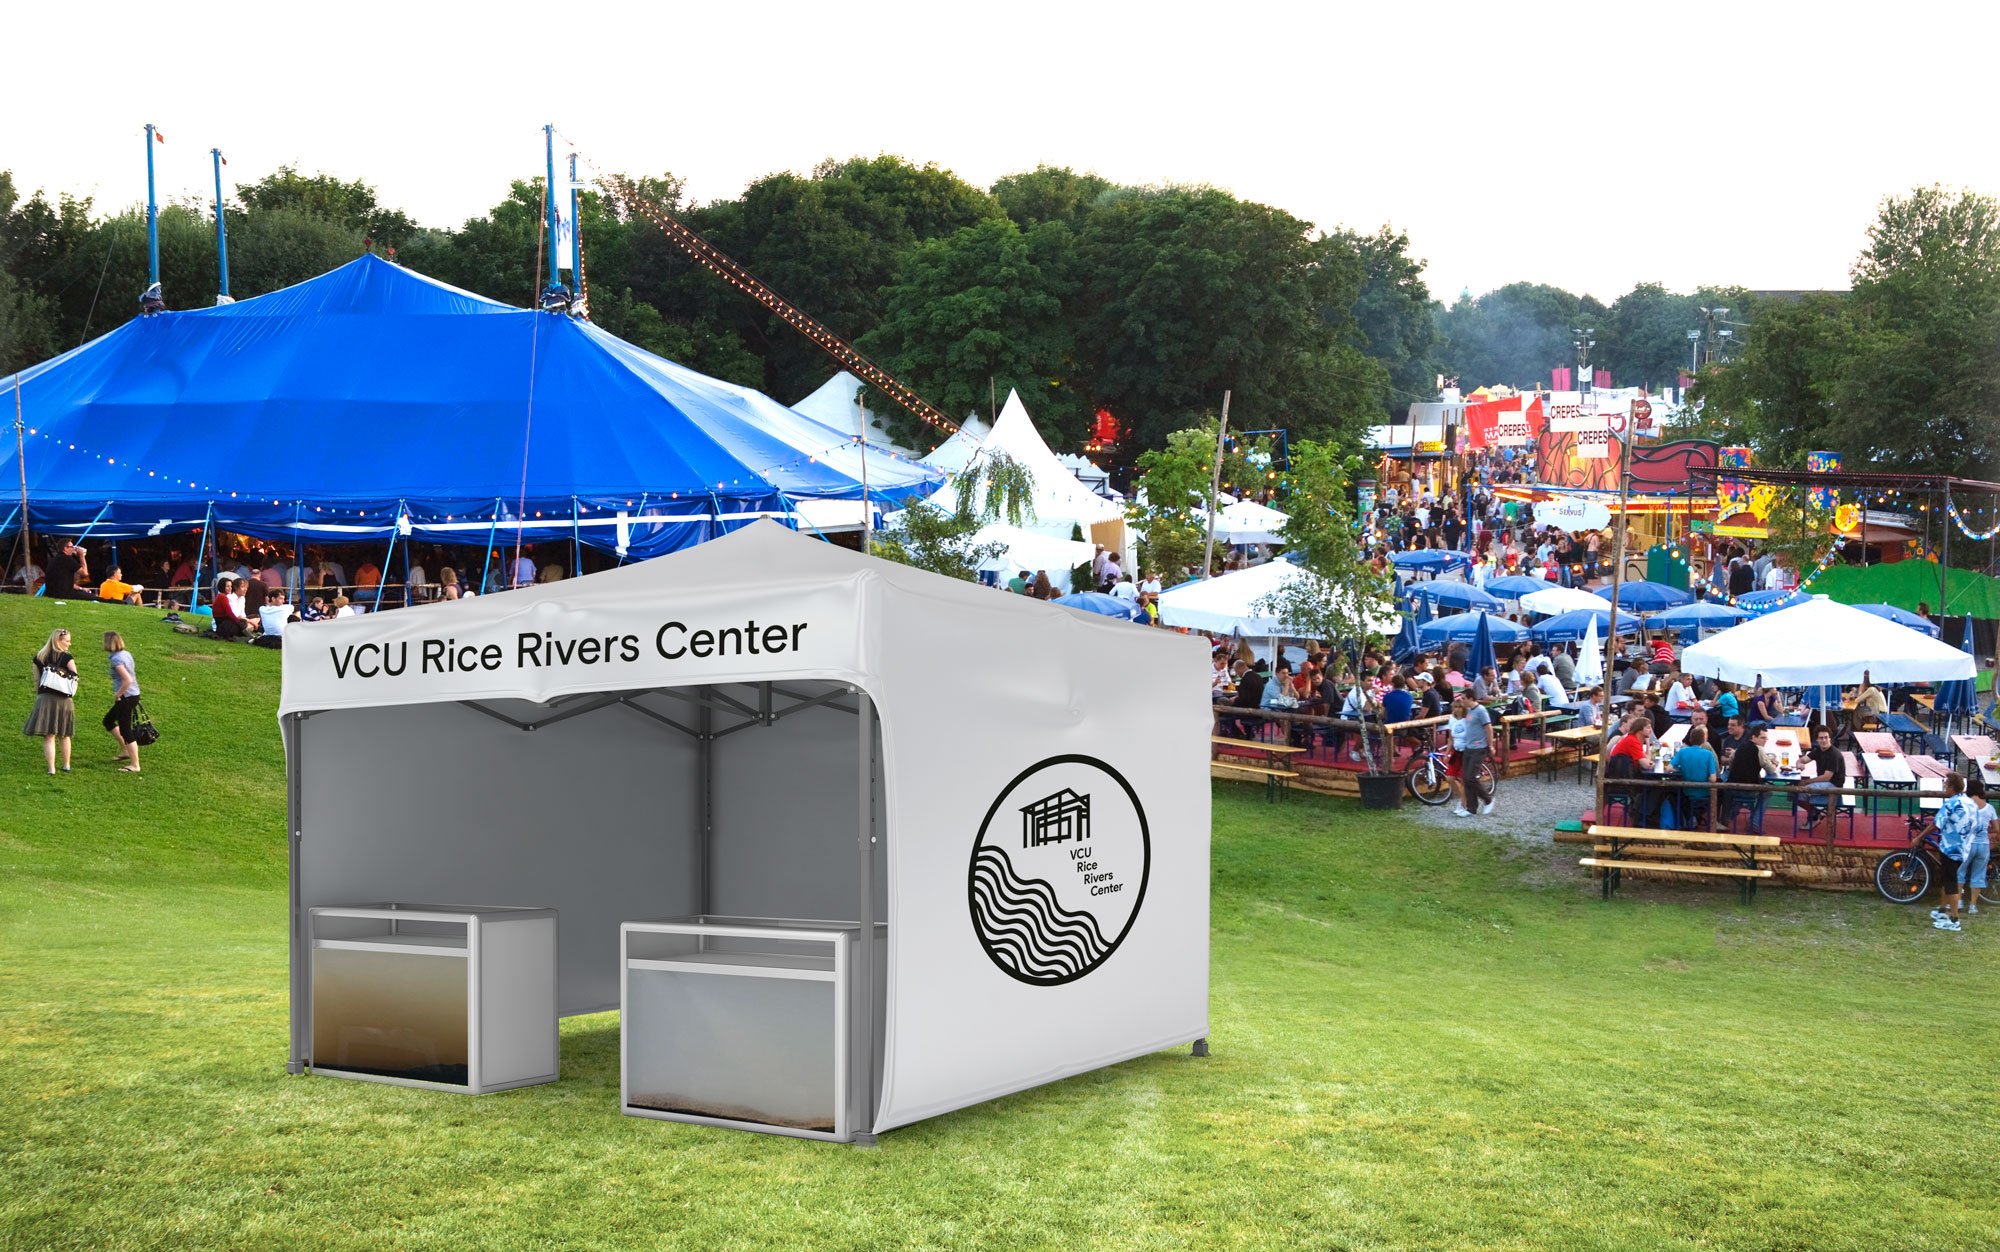 RRC can take this tent to Richmond's many summer festivals and give demonstrations of their work.